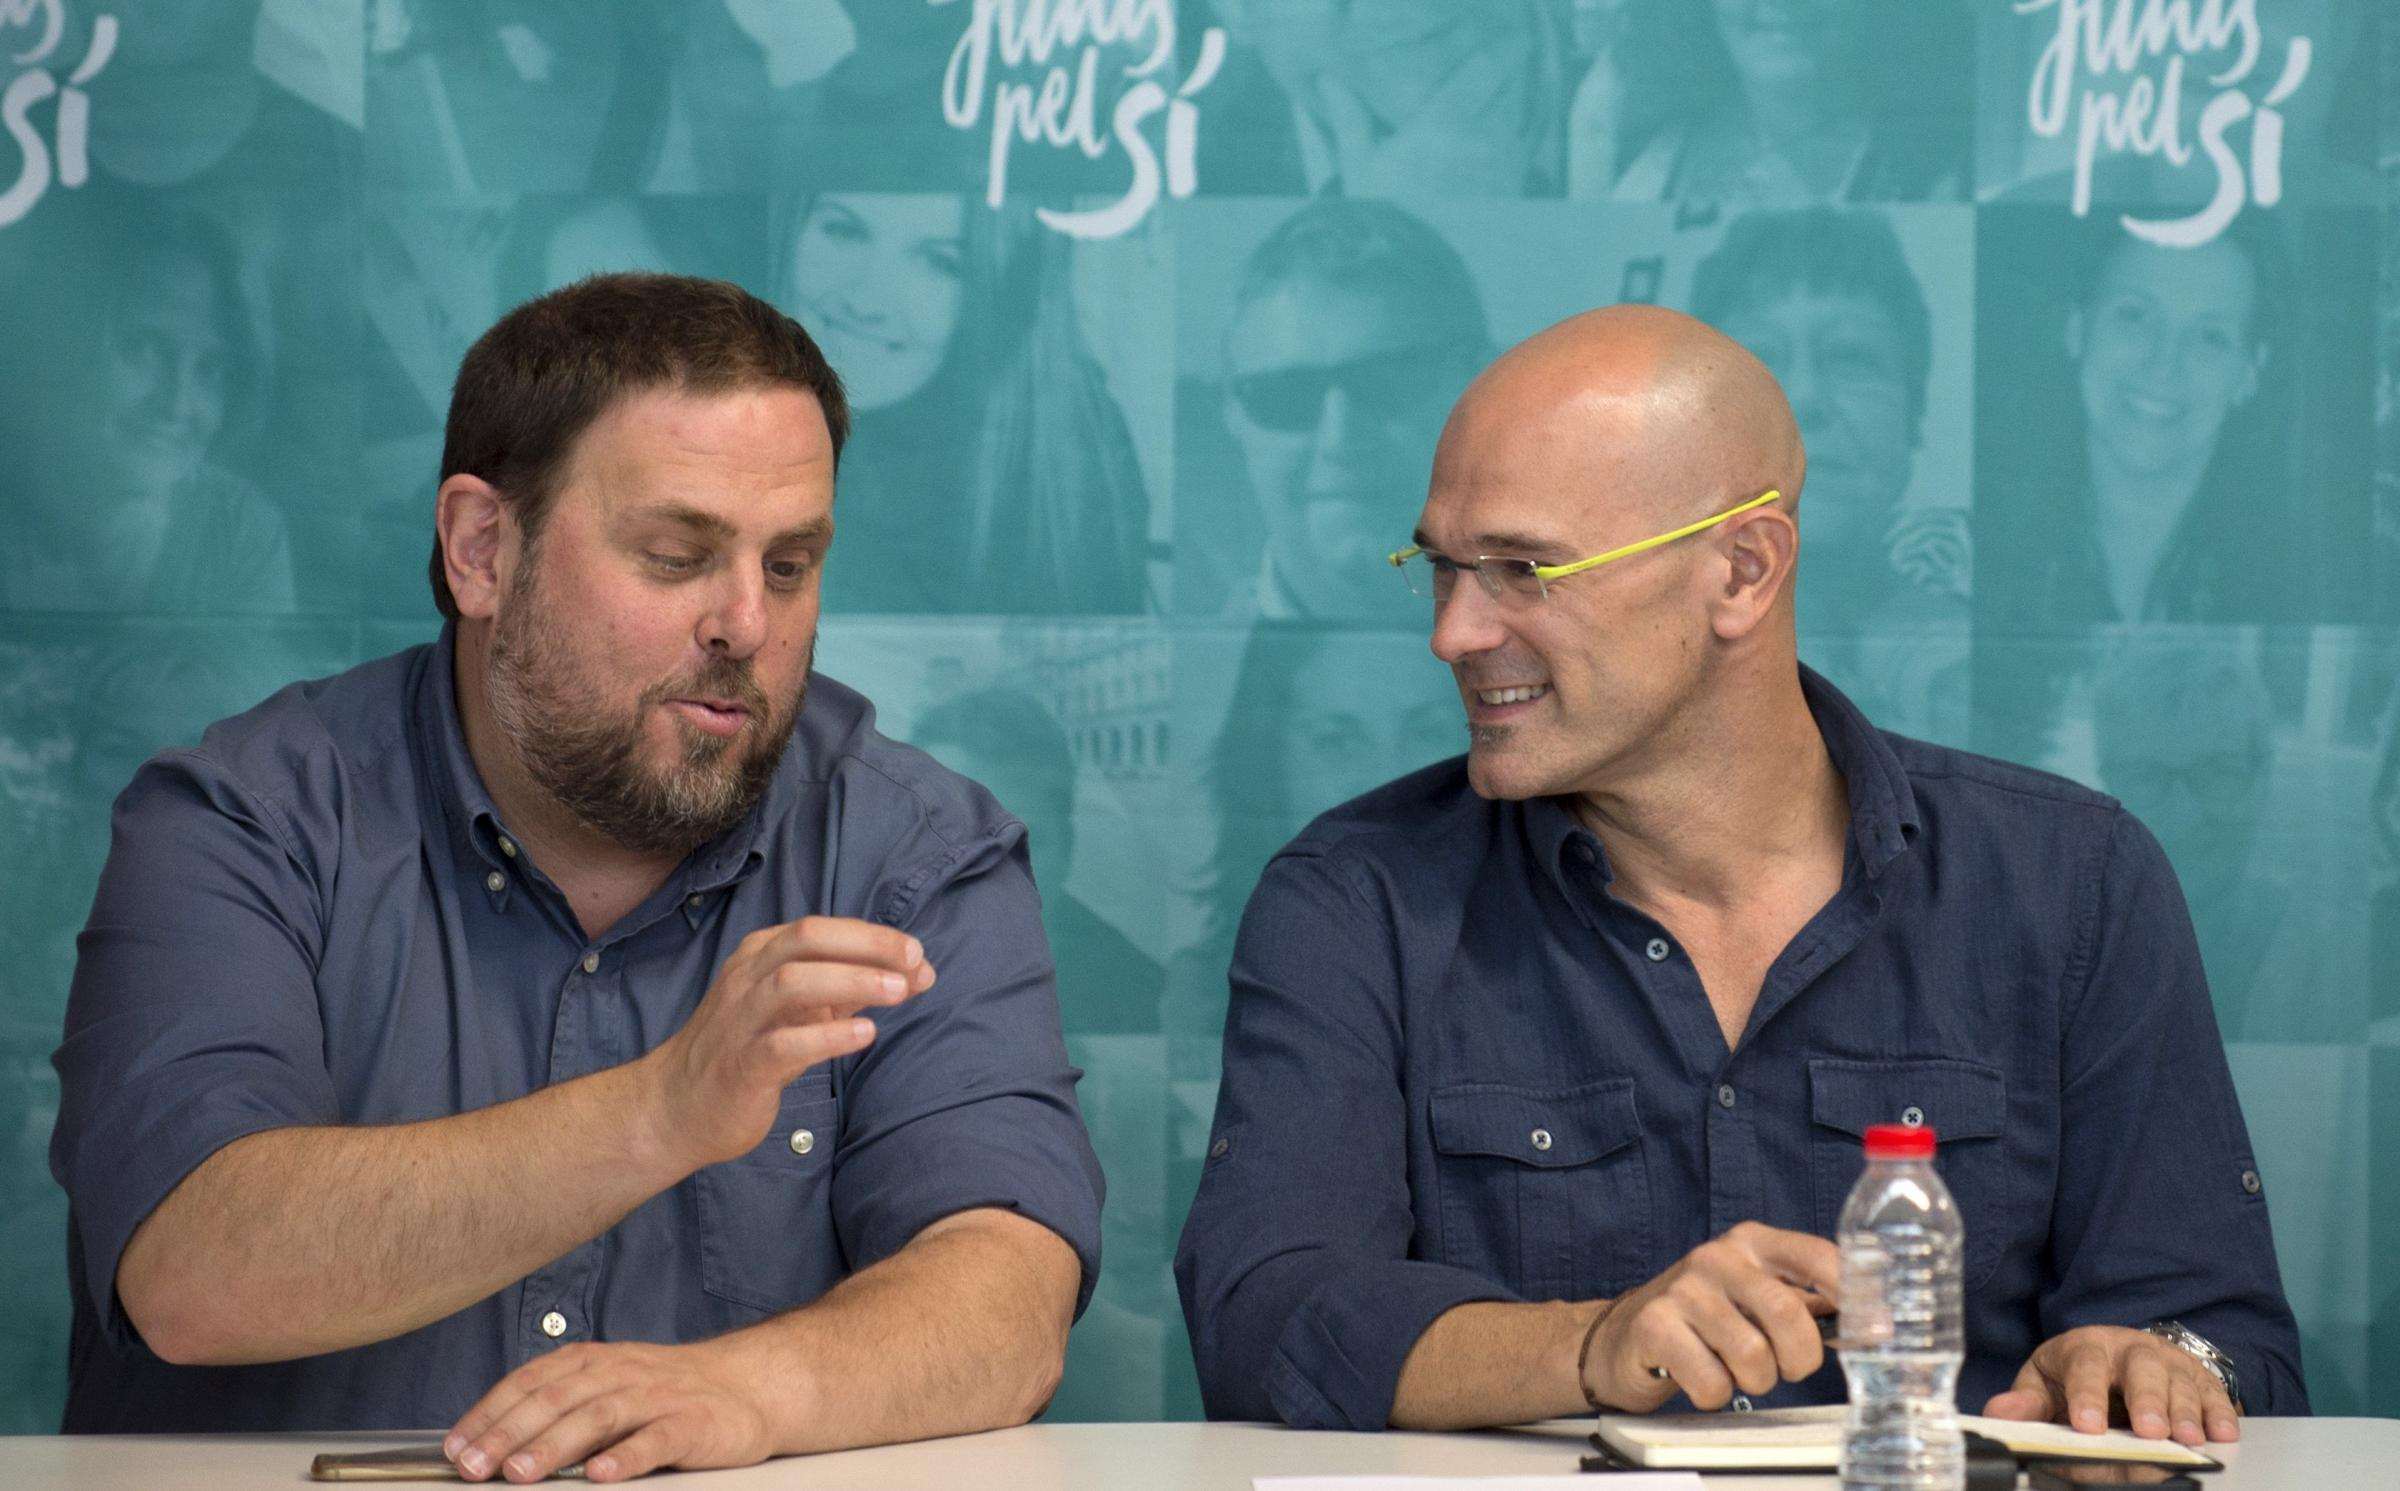 The lawyer representing Oriol Junqueras (left) and Raul Romeva said they were ready to face a Spanish court